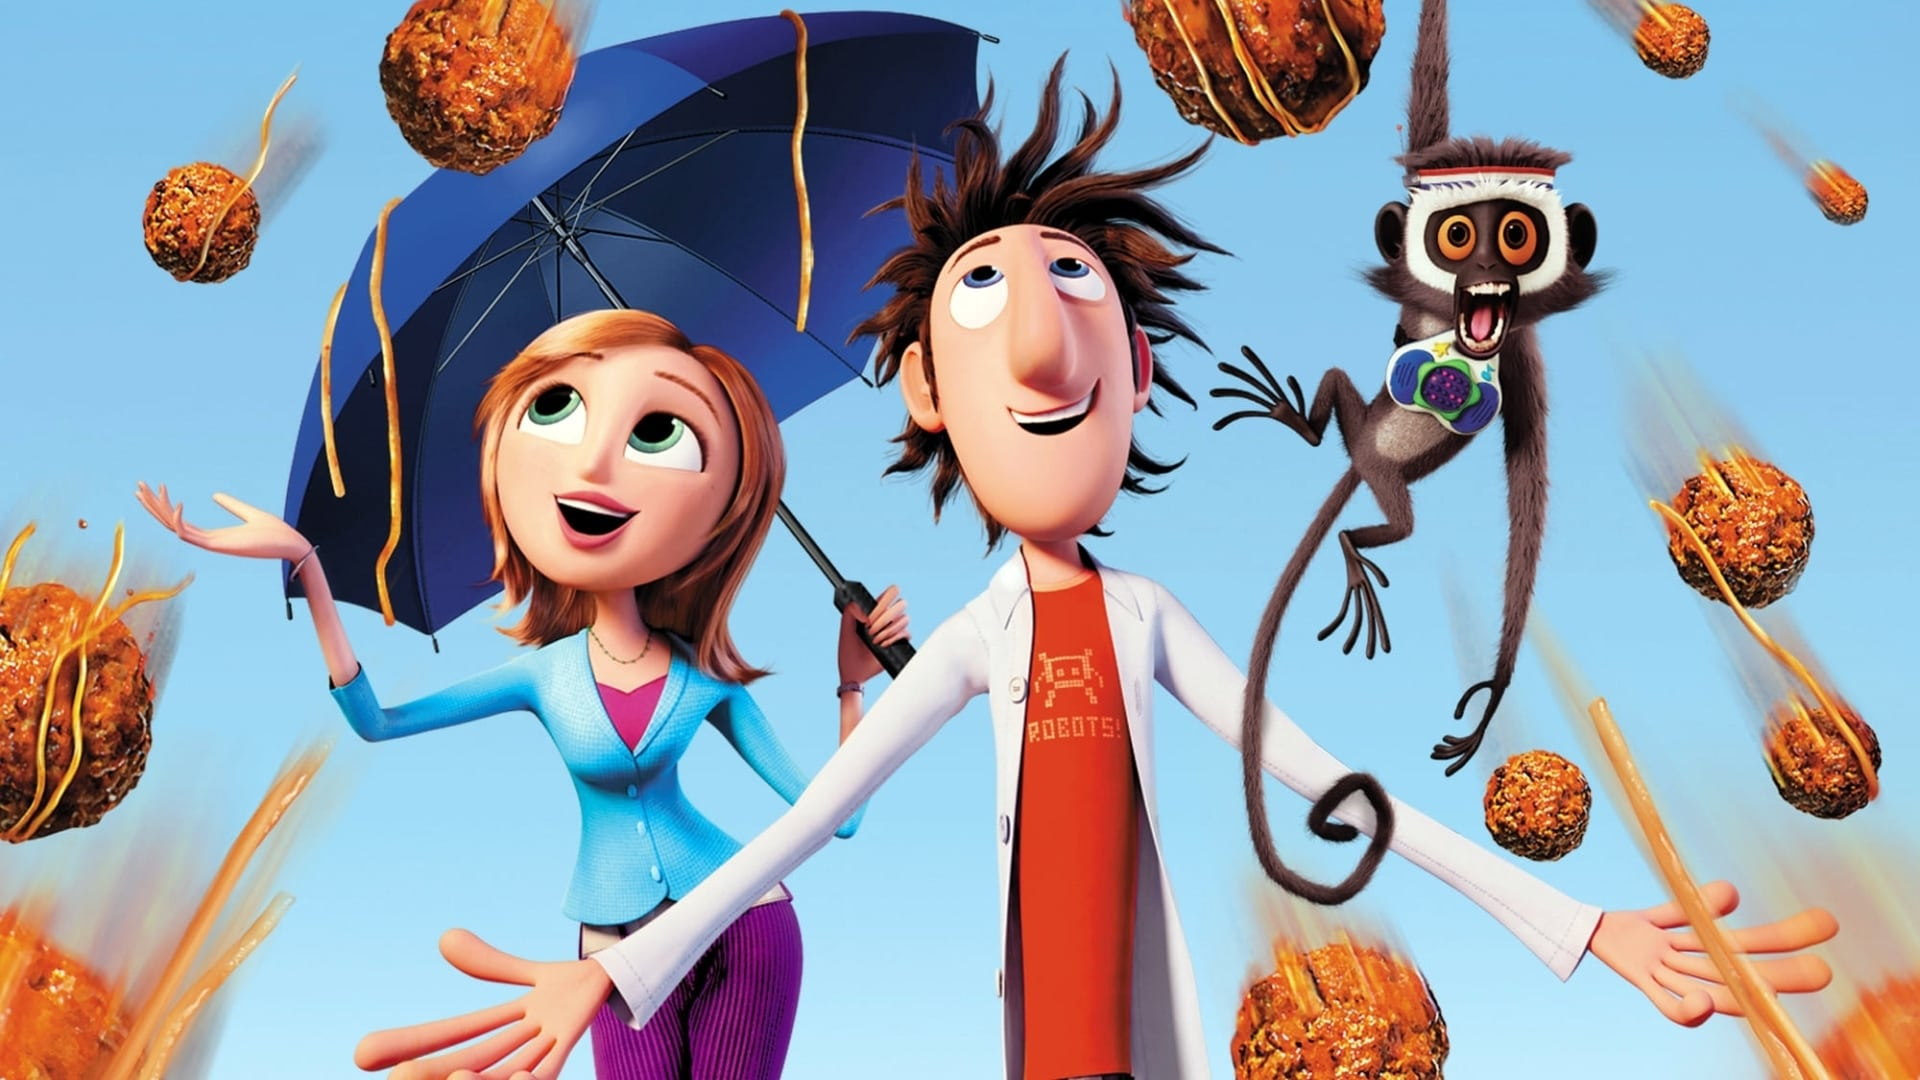 50 Animated Movies With a Unique Look